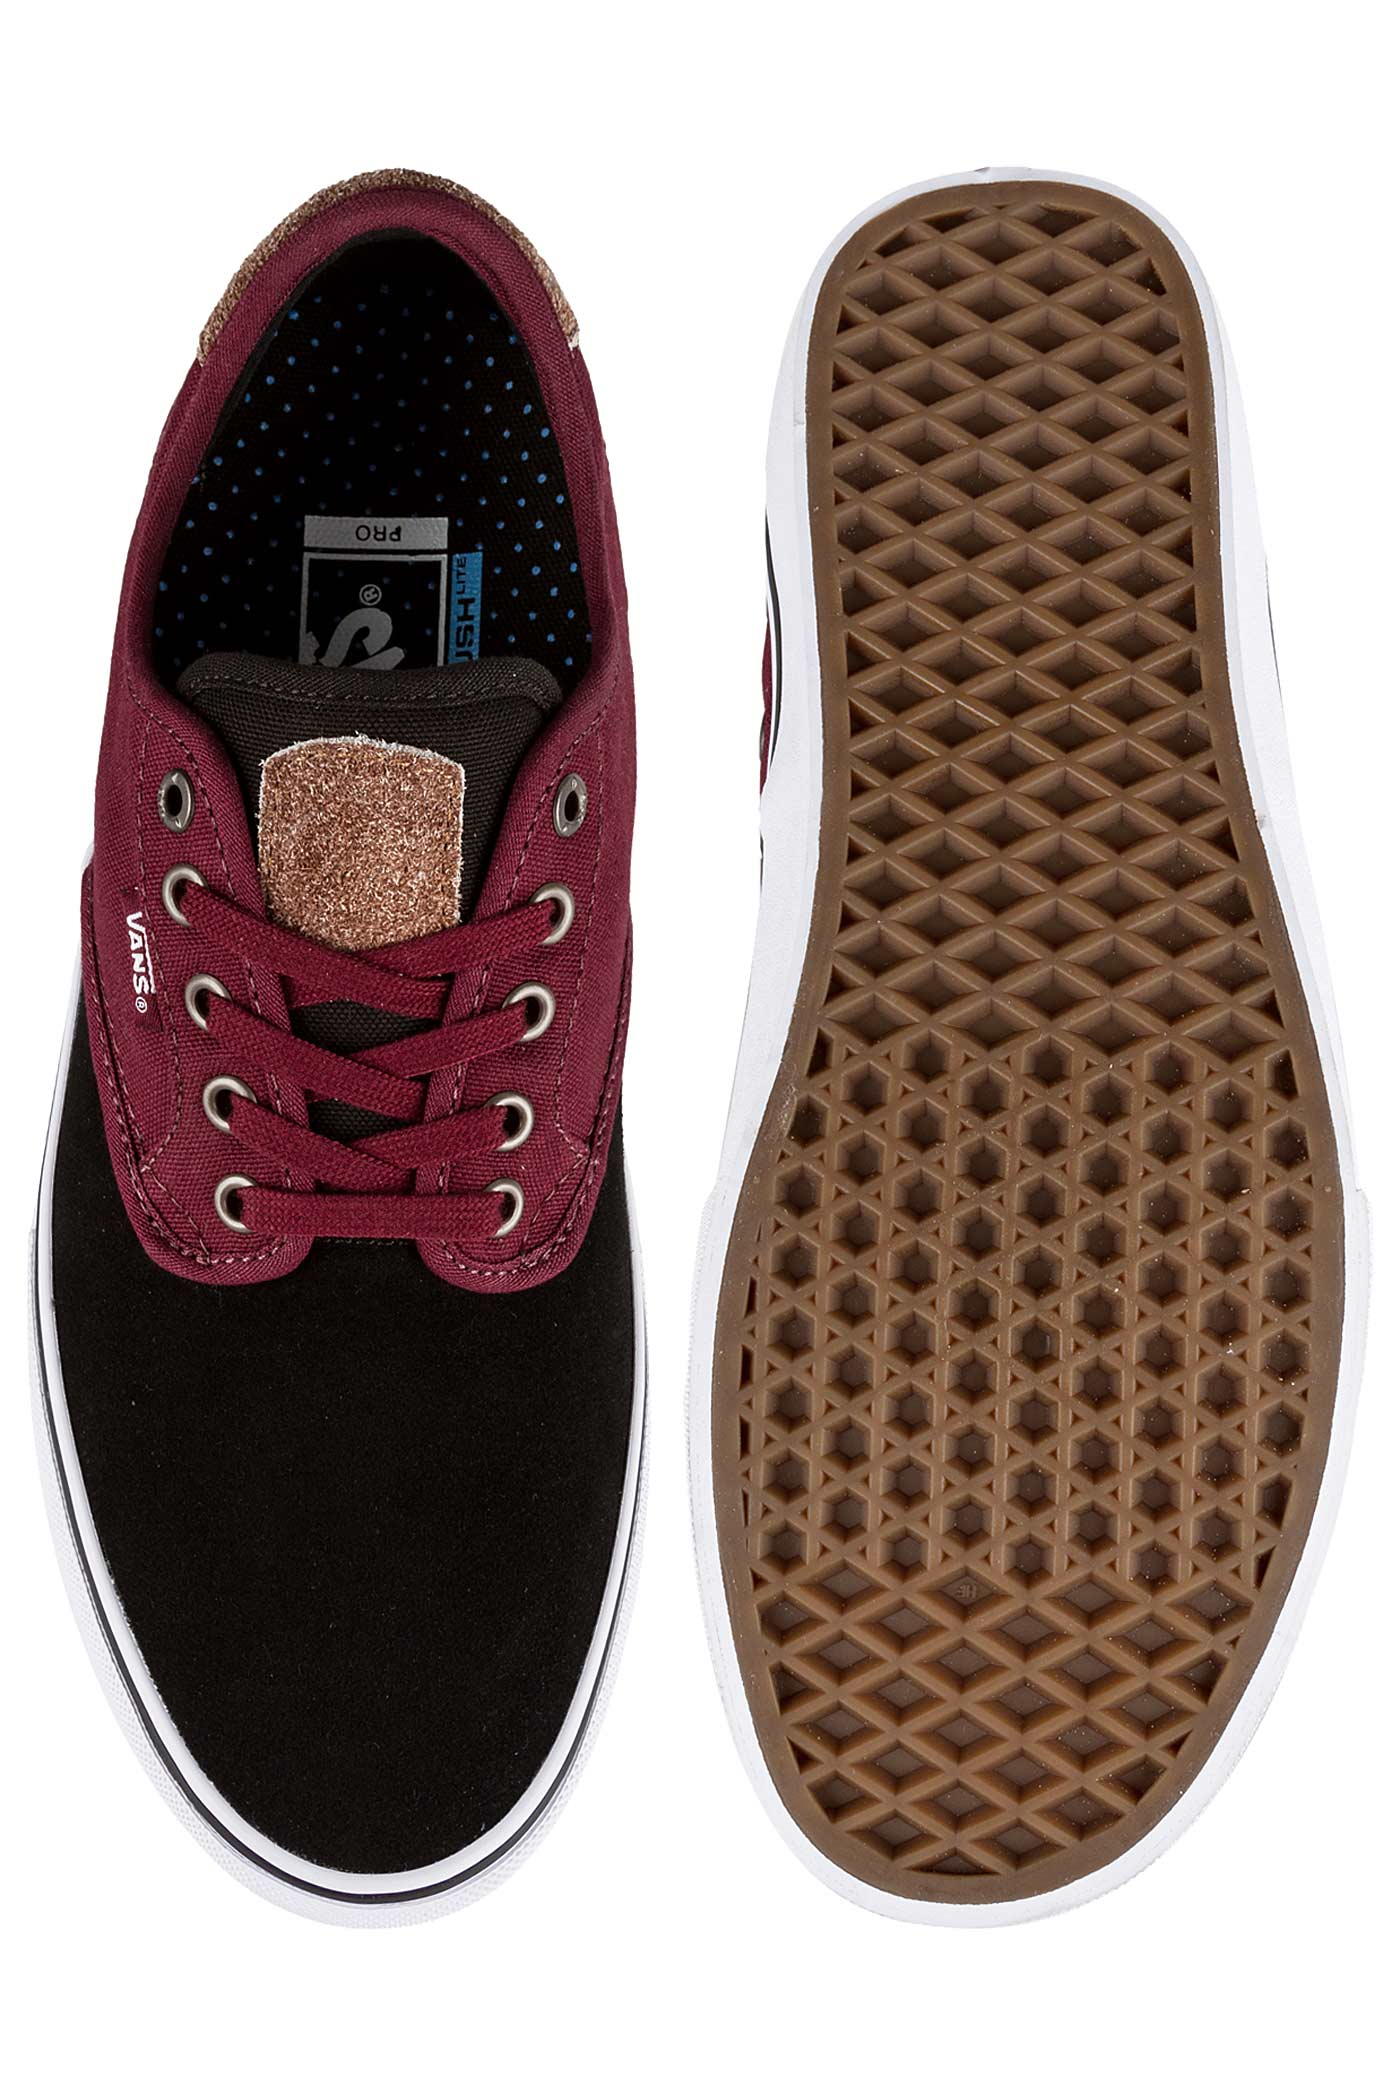 Vans Chima Ferguson Pro Shoes (two tone black port) buy at skatedeluxe 8ef7ecb86